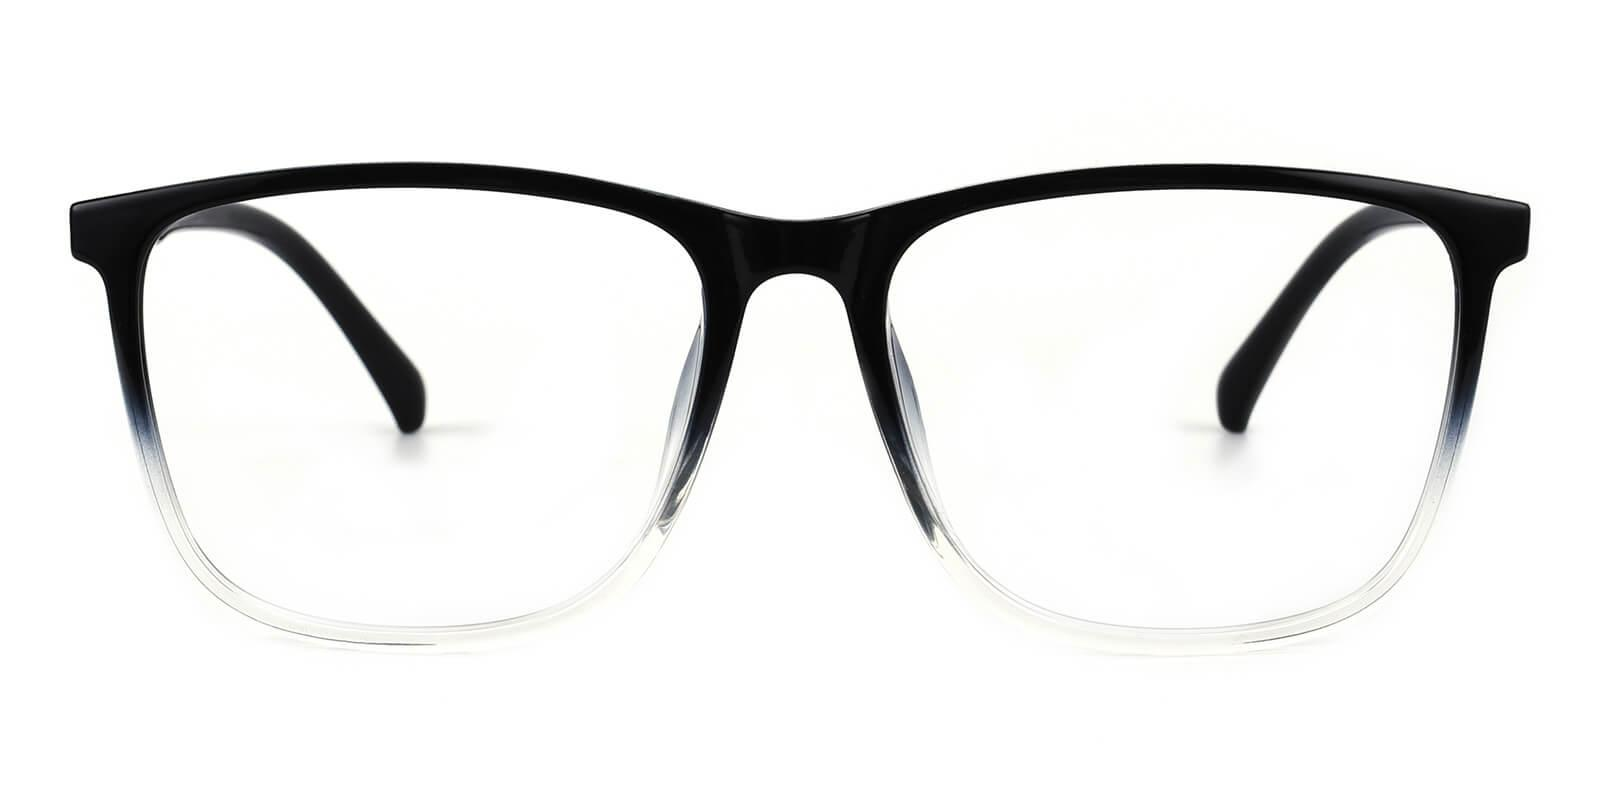 Poise-Black-Square-TR-Eyeglasses-additional2